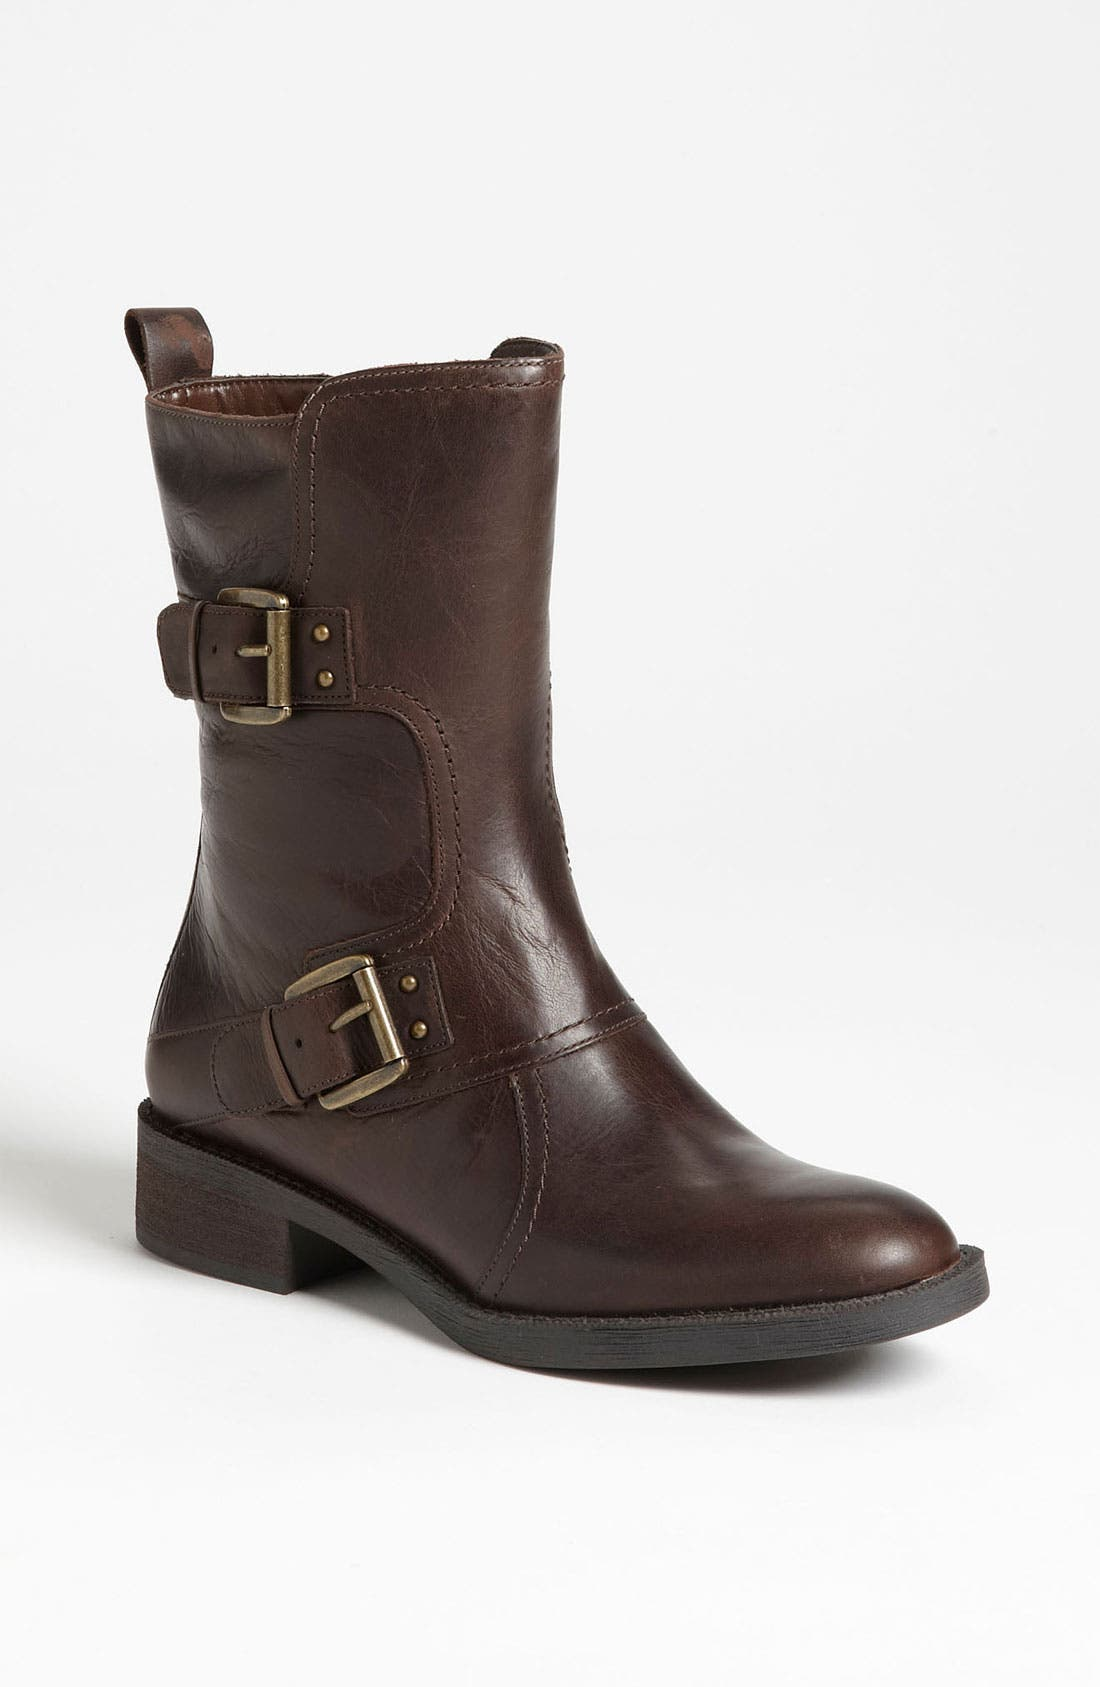 Alternate Image 1 Selected - Enzo Angiolini 'Sinley' Buckle Boot